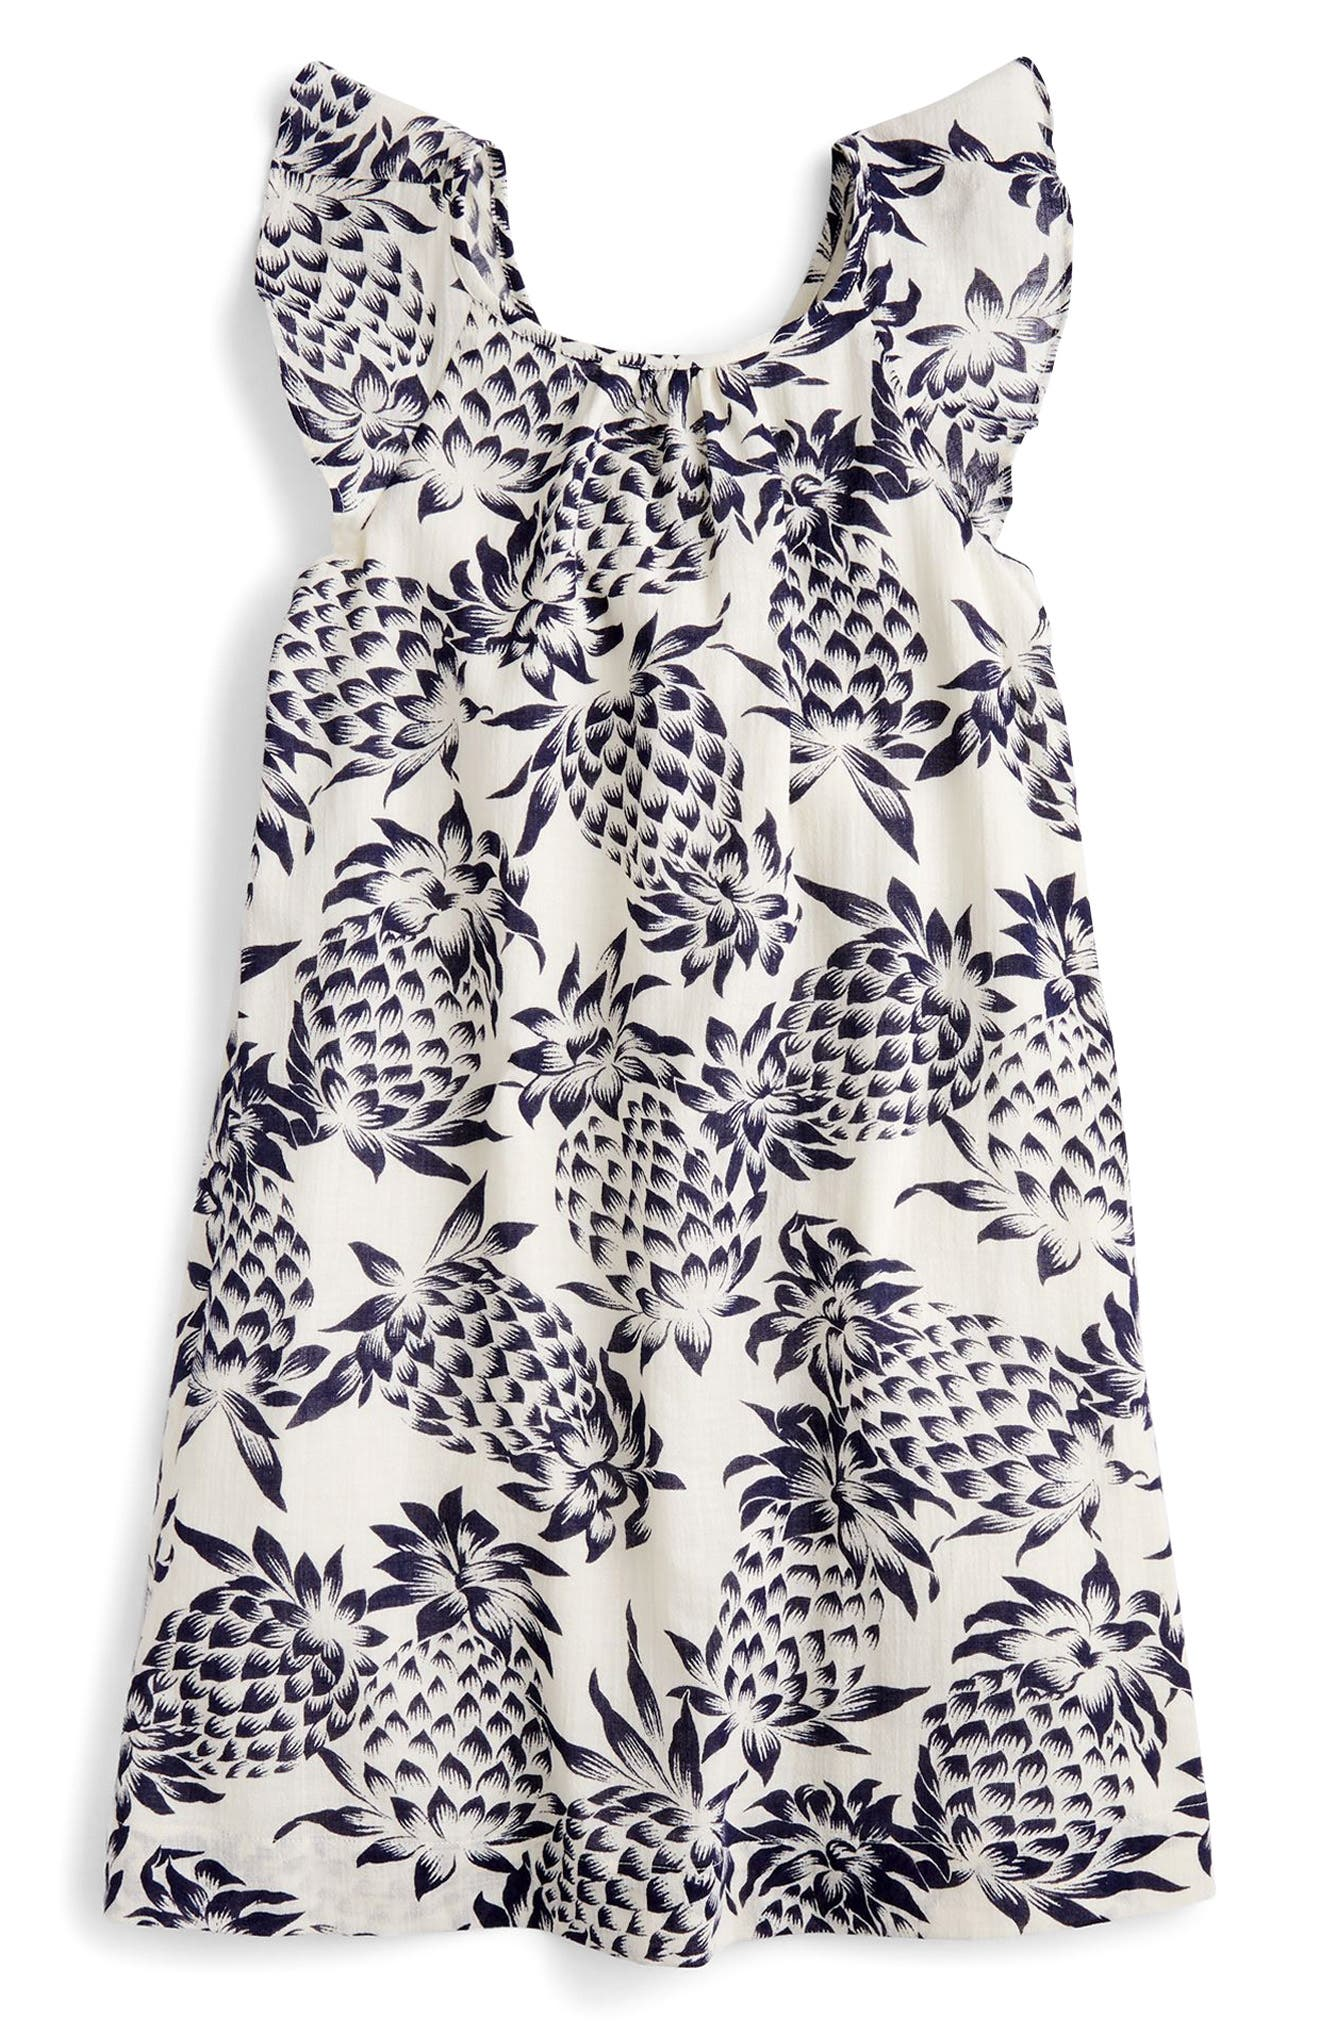 Maisie Pineapple Print Dress,                             Main thumbnail 1, color,                             900